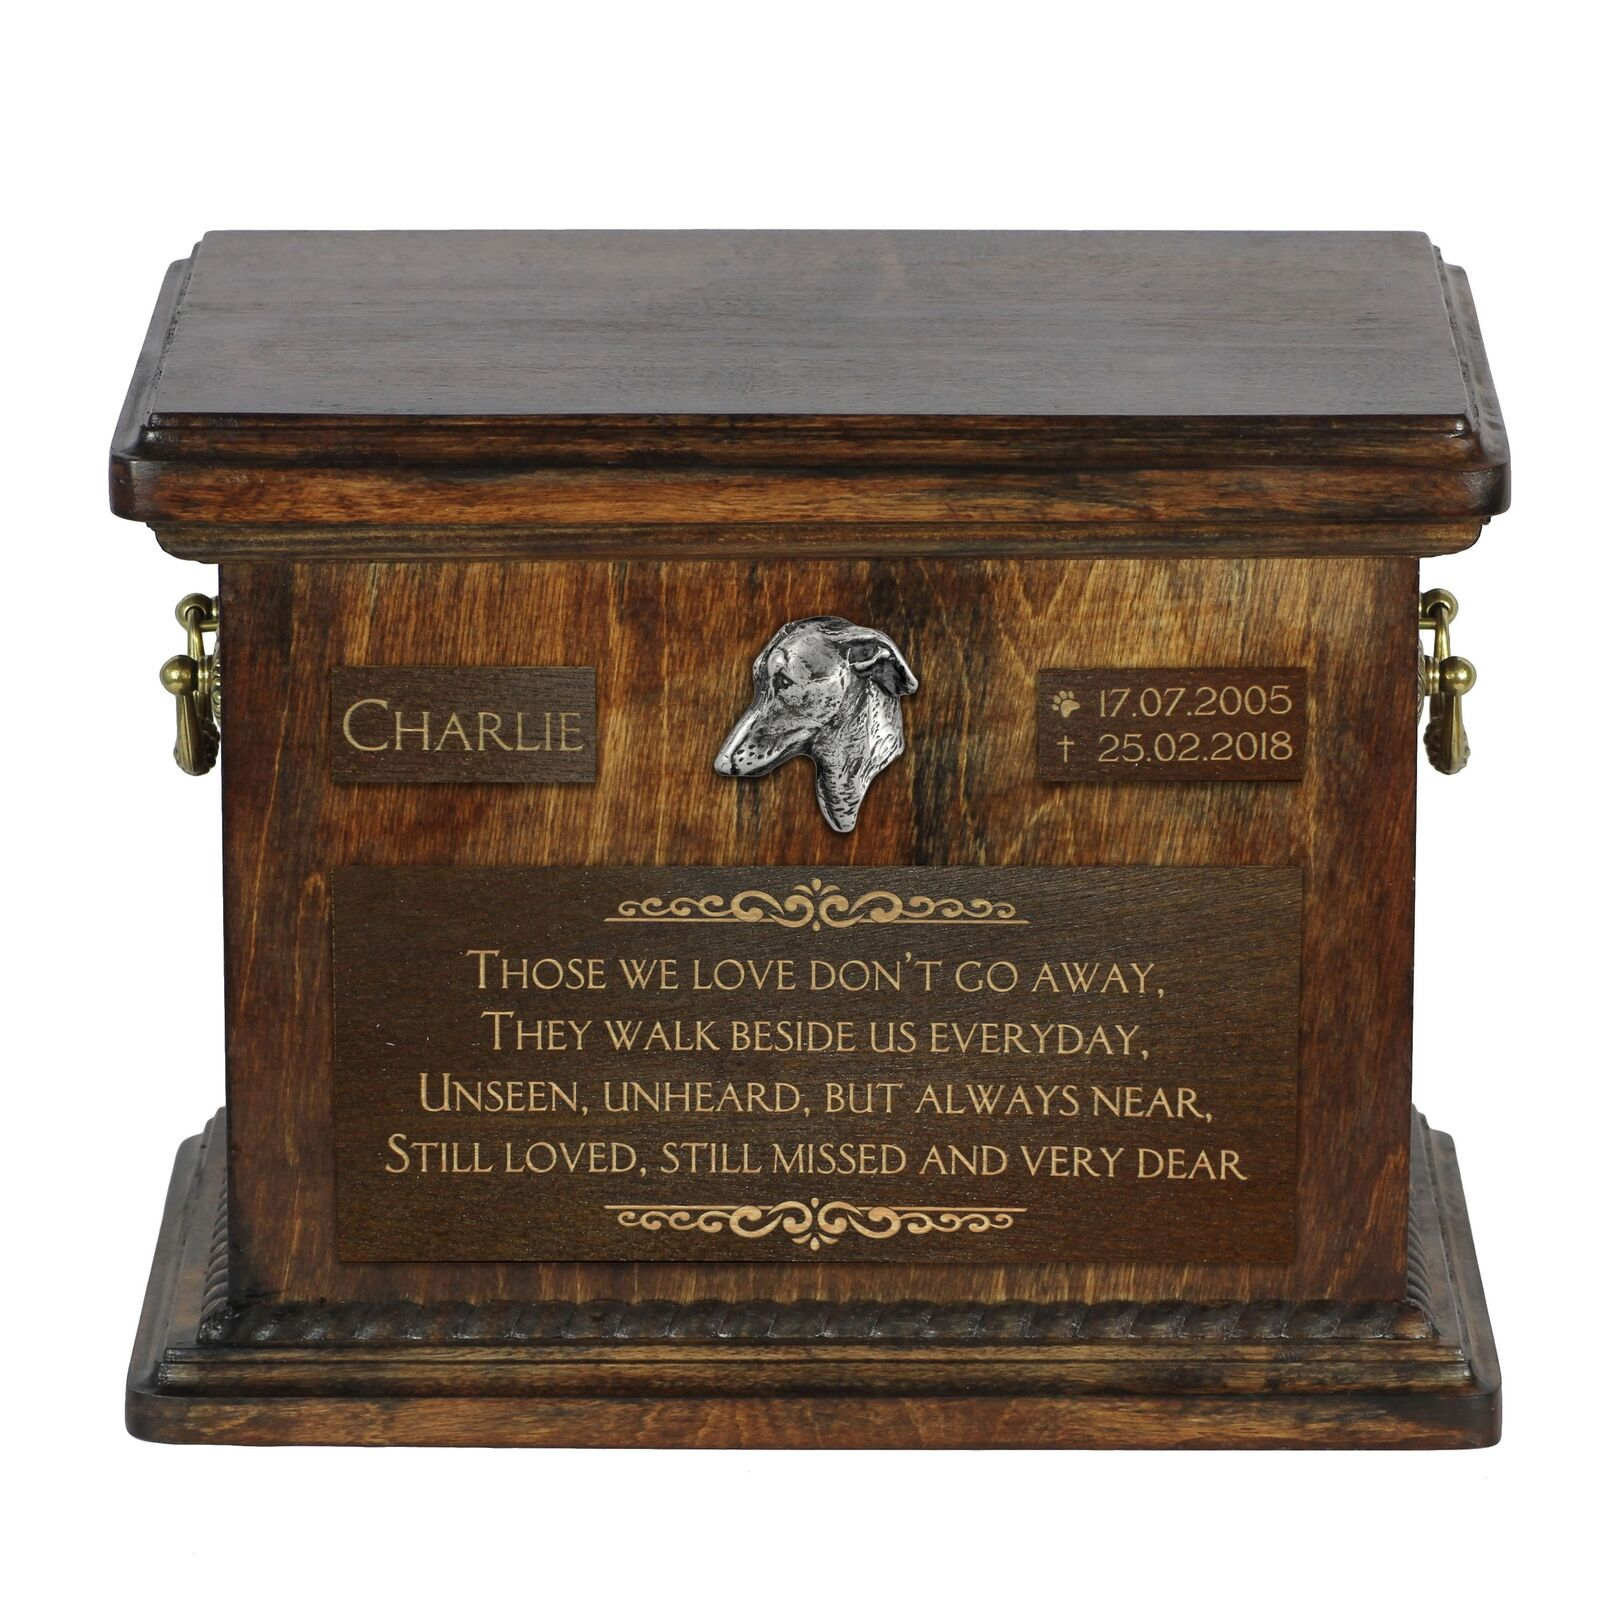 Italian grauhound - Urn for dog's ashes with image of a dog, Art Dog